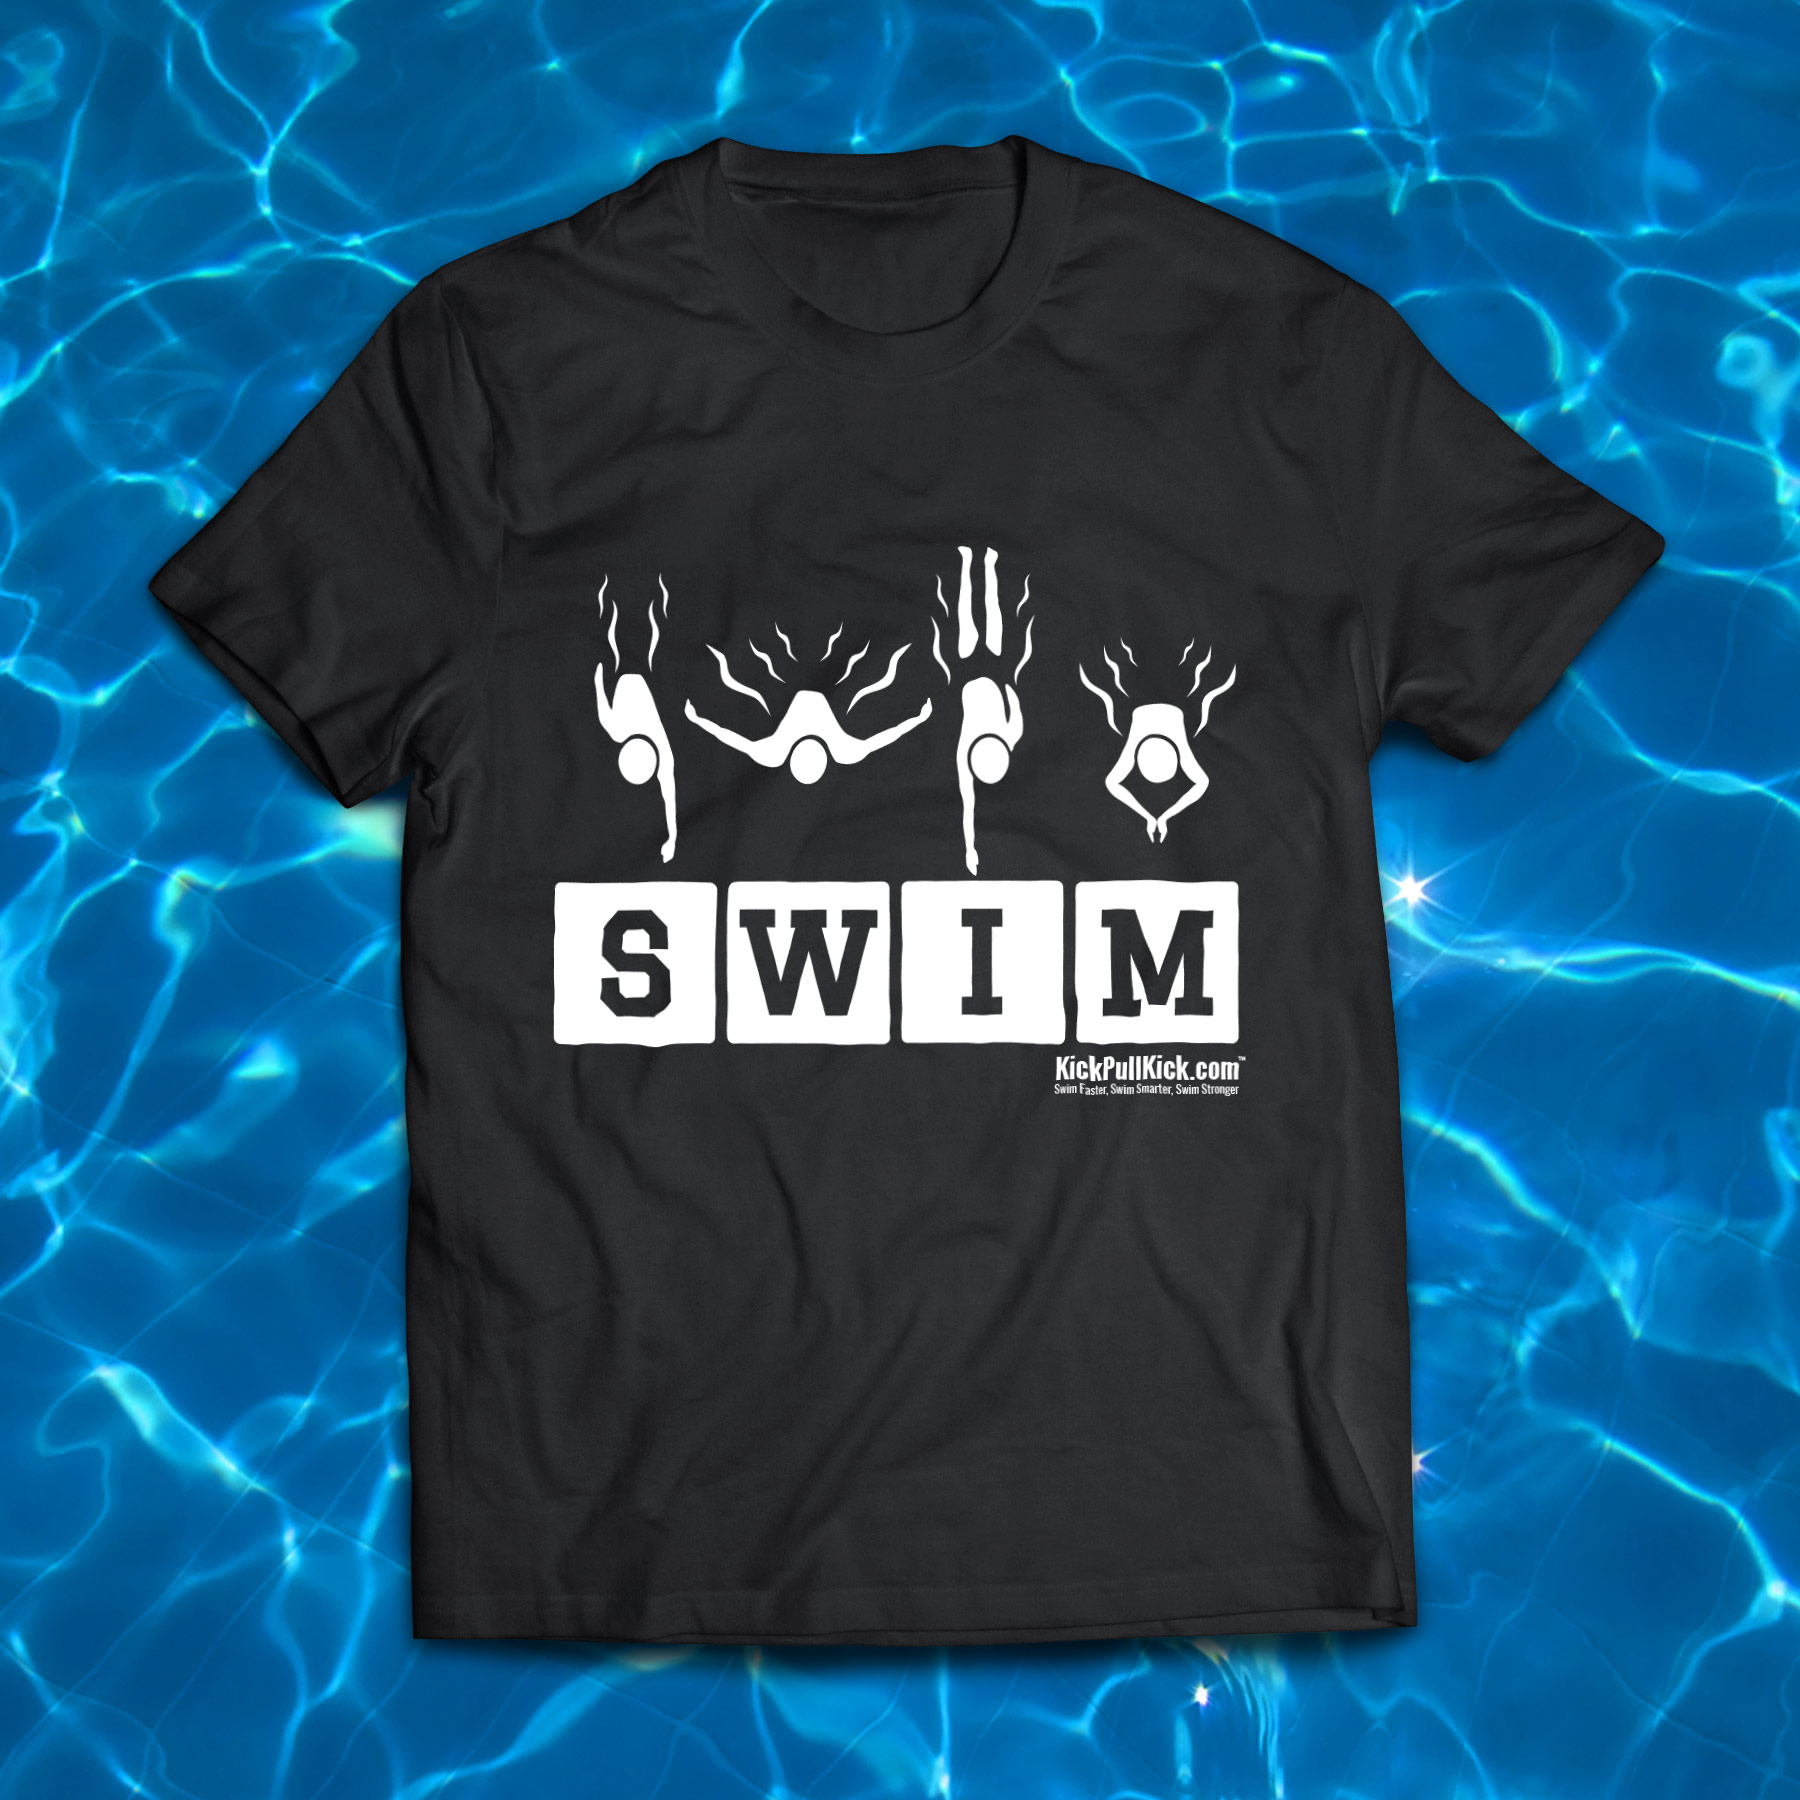 Design t shirt zazzle - Design T Shirts Zazzle Swimming Tshirts Amp Shirt Designs Zazzle